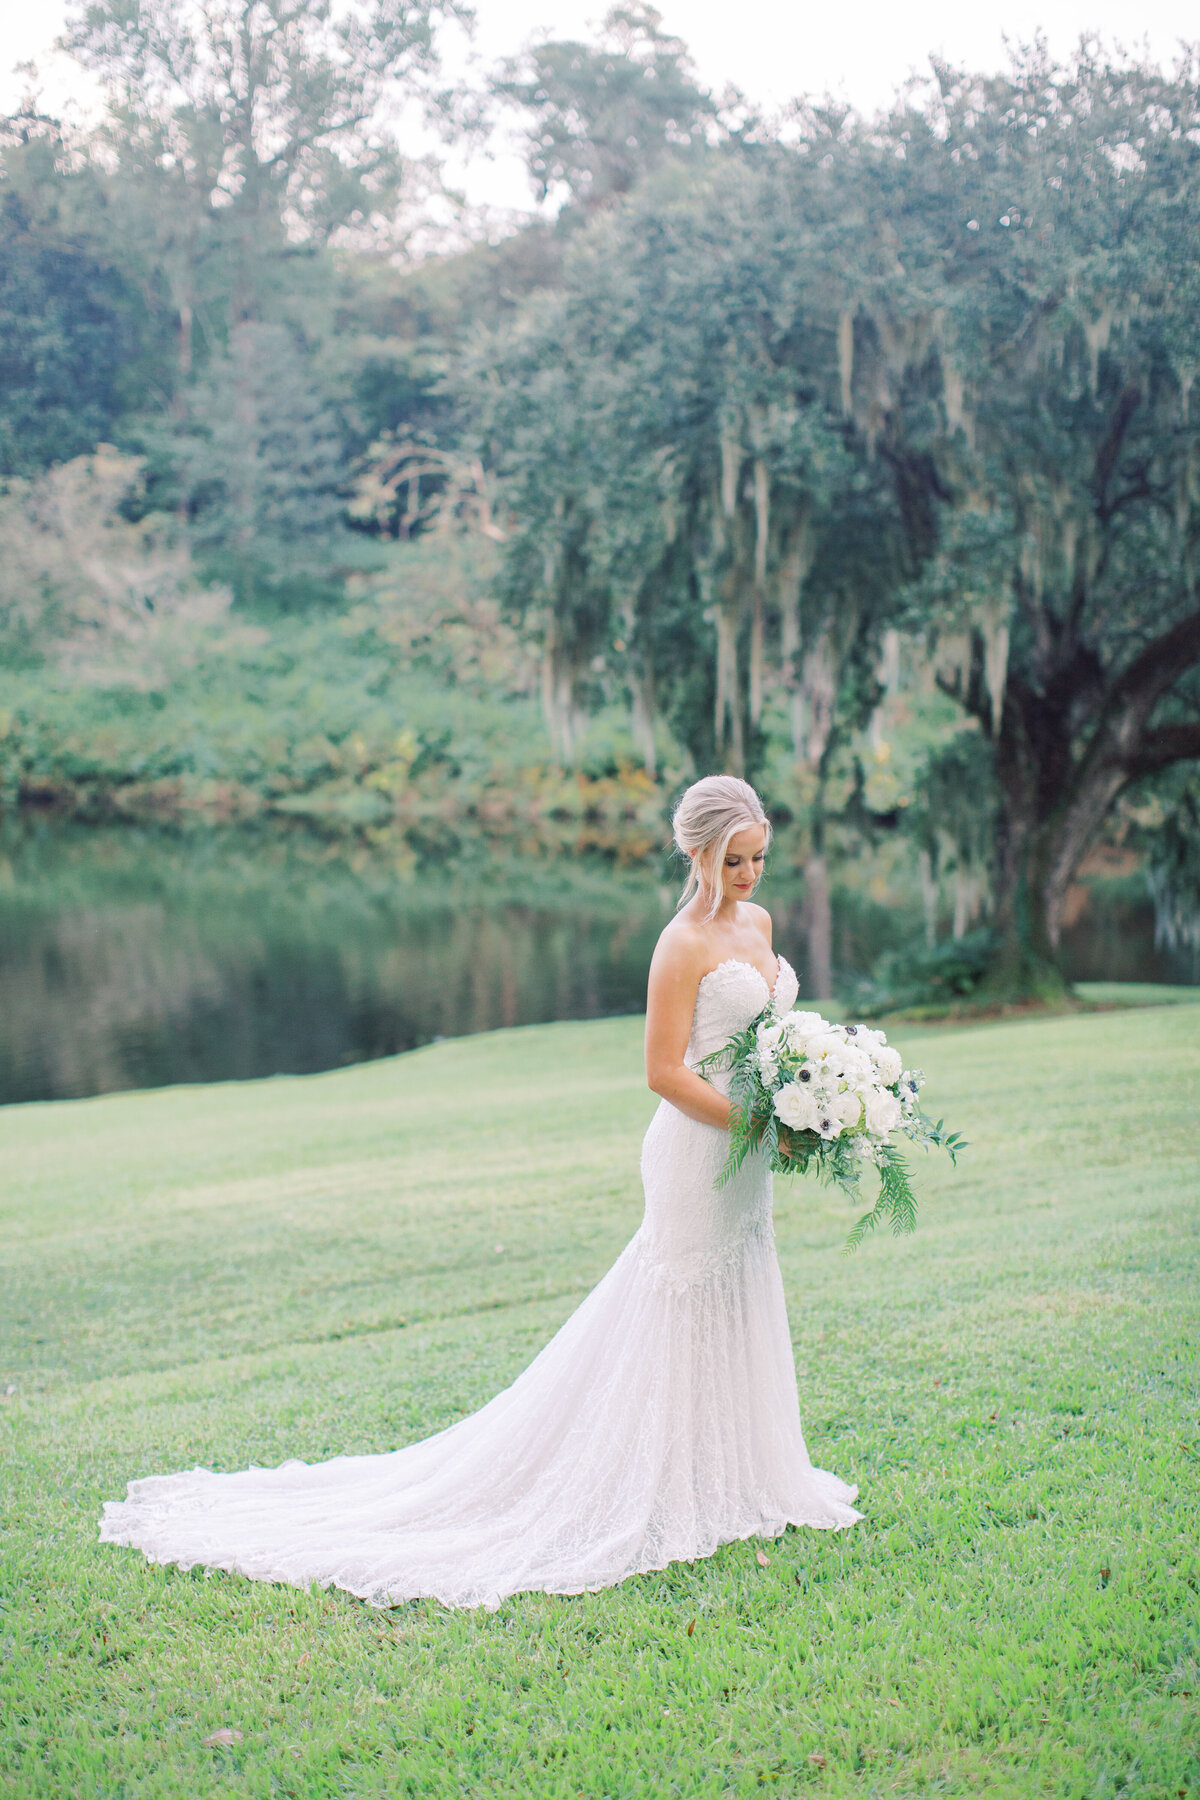 Melton_Wedding__Middleton_Place_Plantation_Charleston_South_Carolina_Jacksonville_Florida_Devon_Donnahoo_Photography__0273